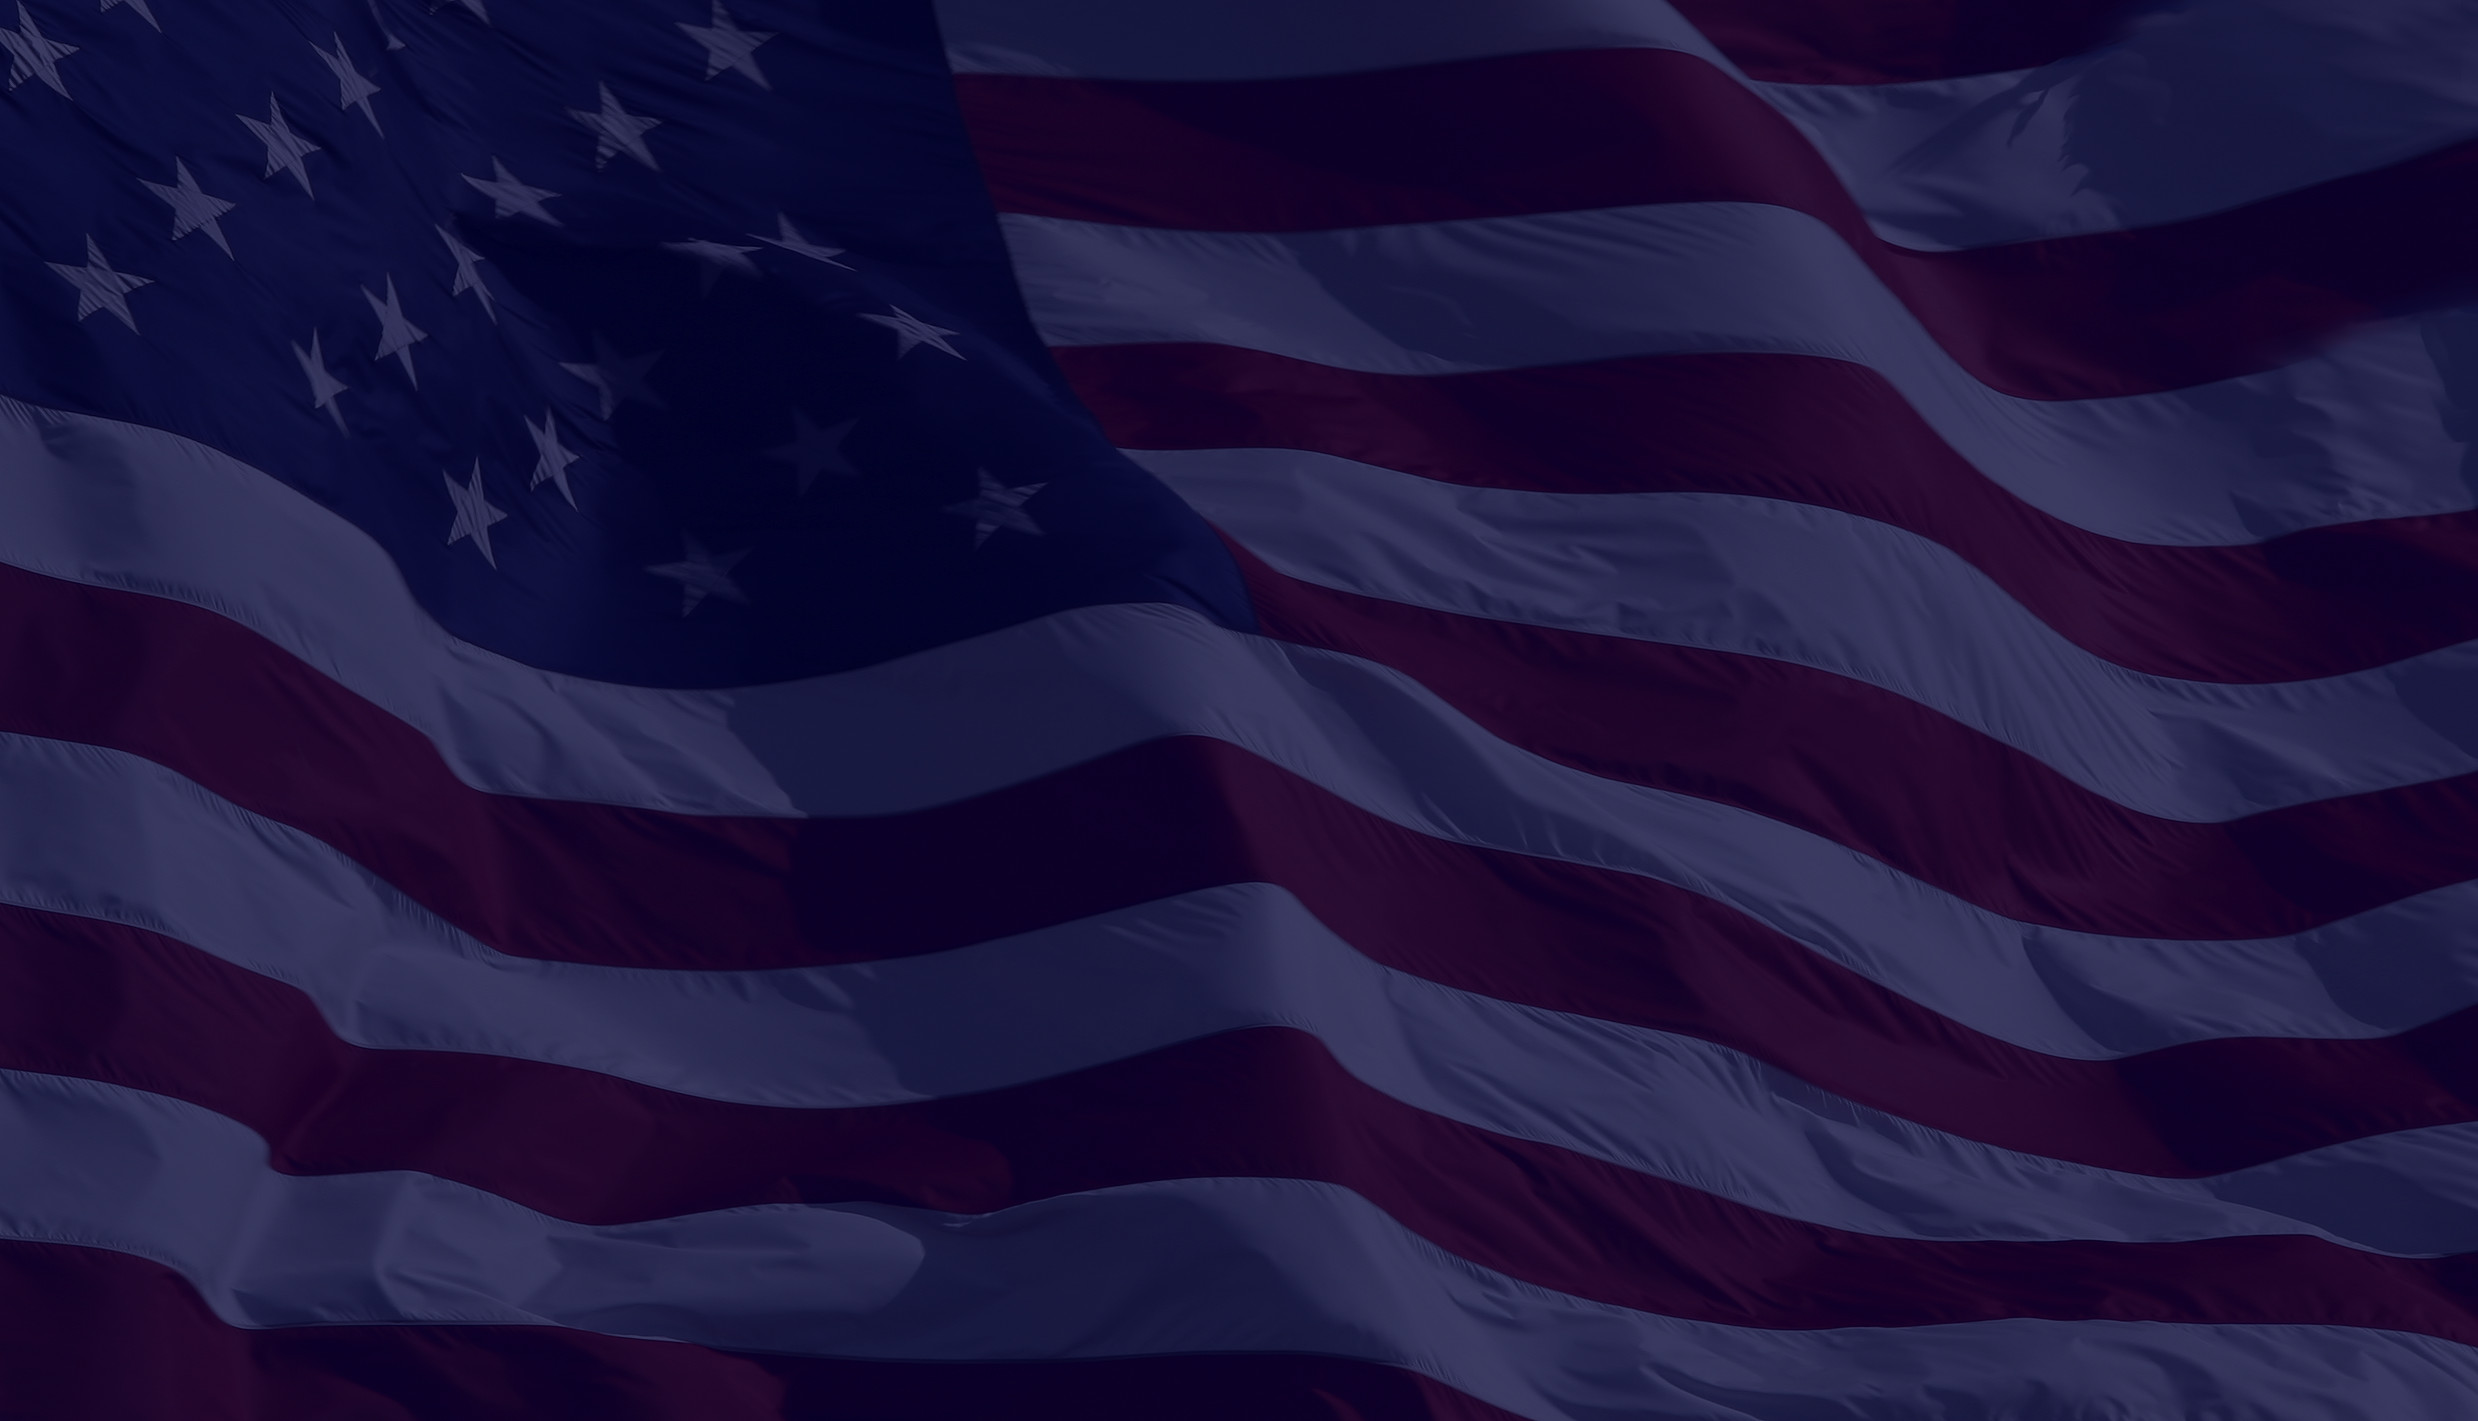 2478x1421 random-wallpapers-american-flag-wallpaper-34317